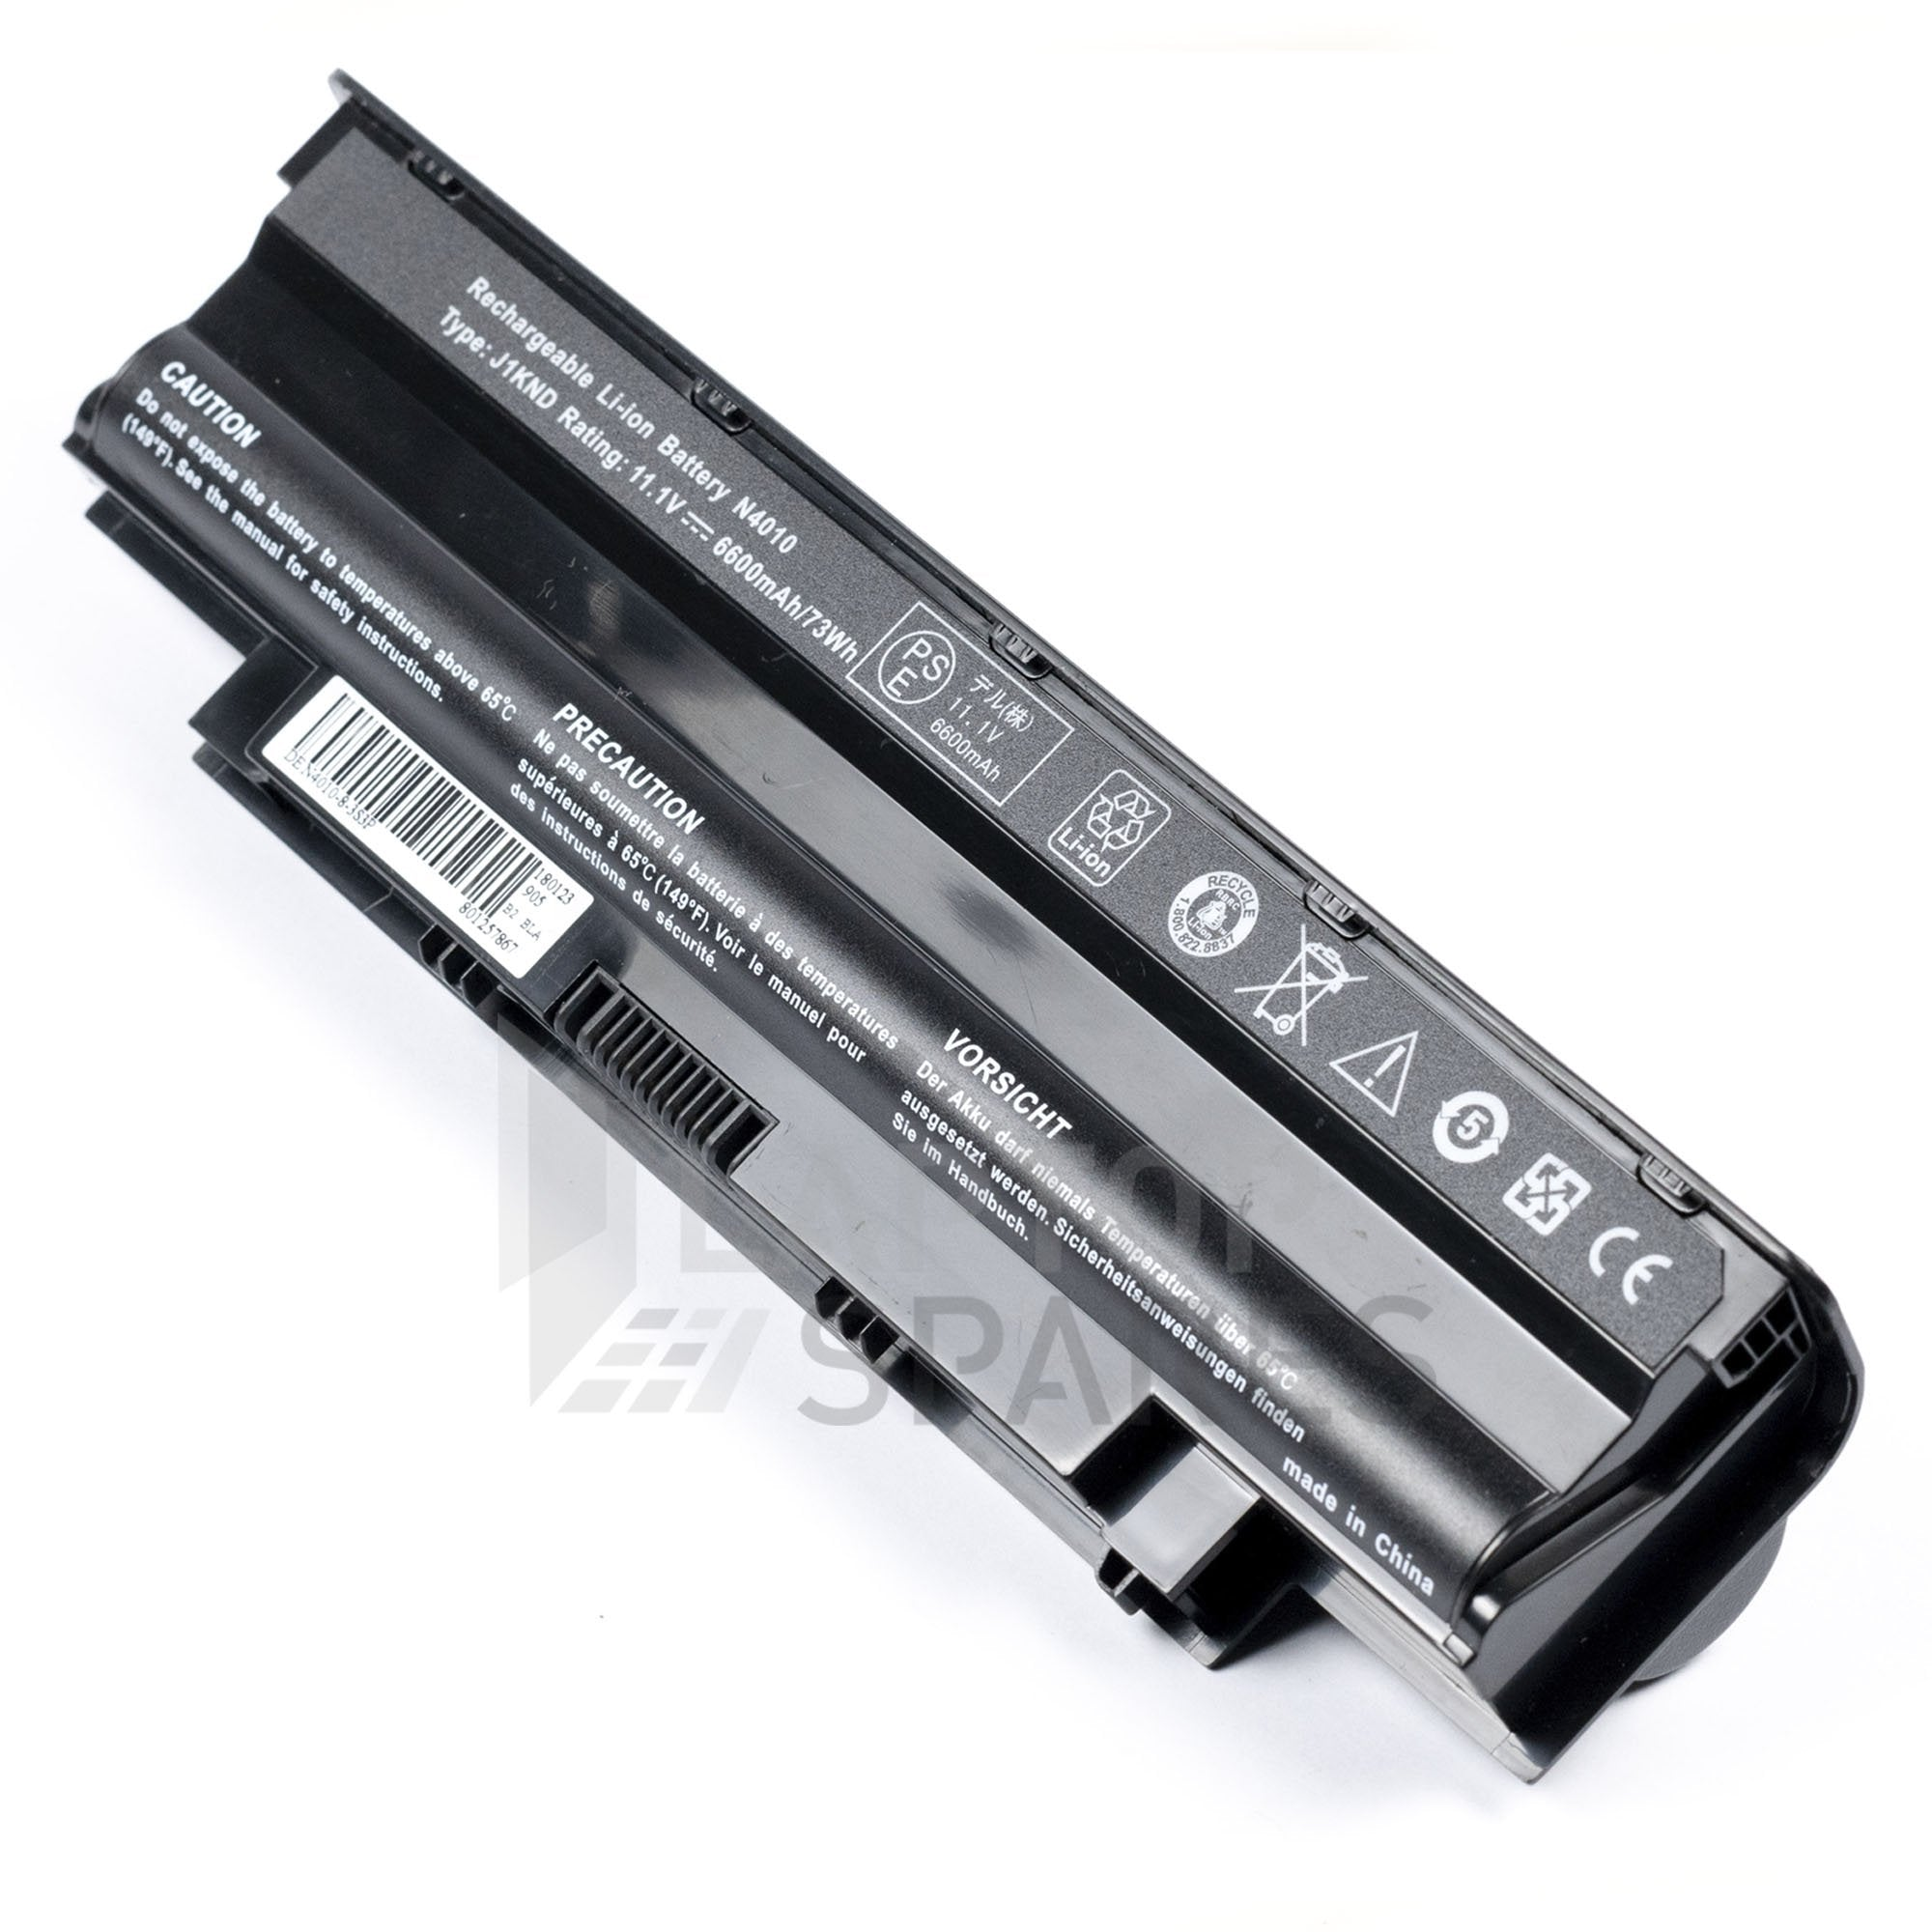 Dell Inspiron 13R INS13RD-448 6600mAh 9 Cell Battery